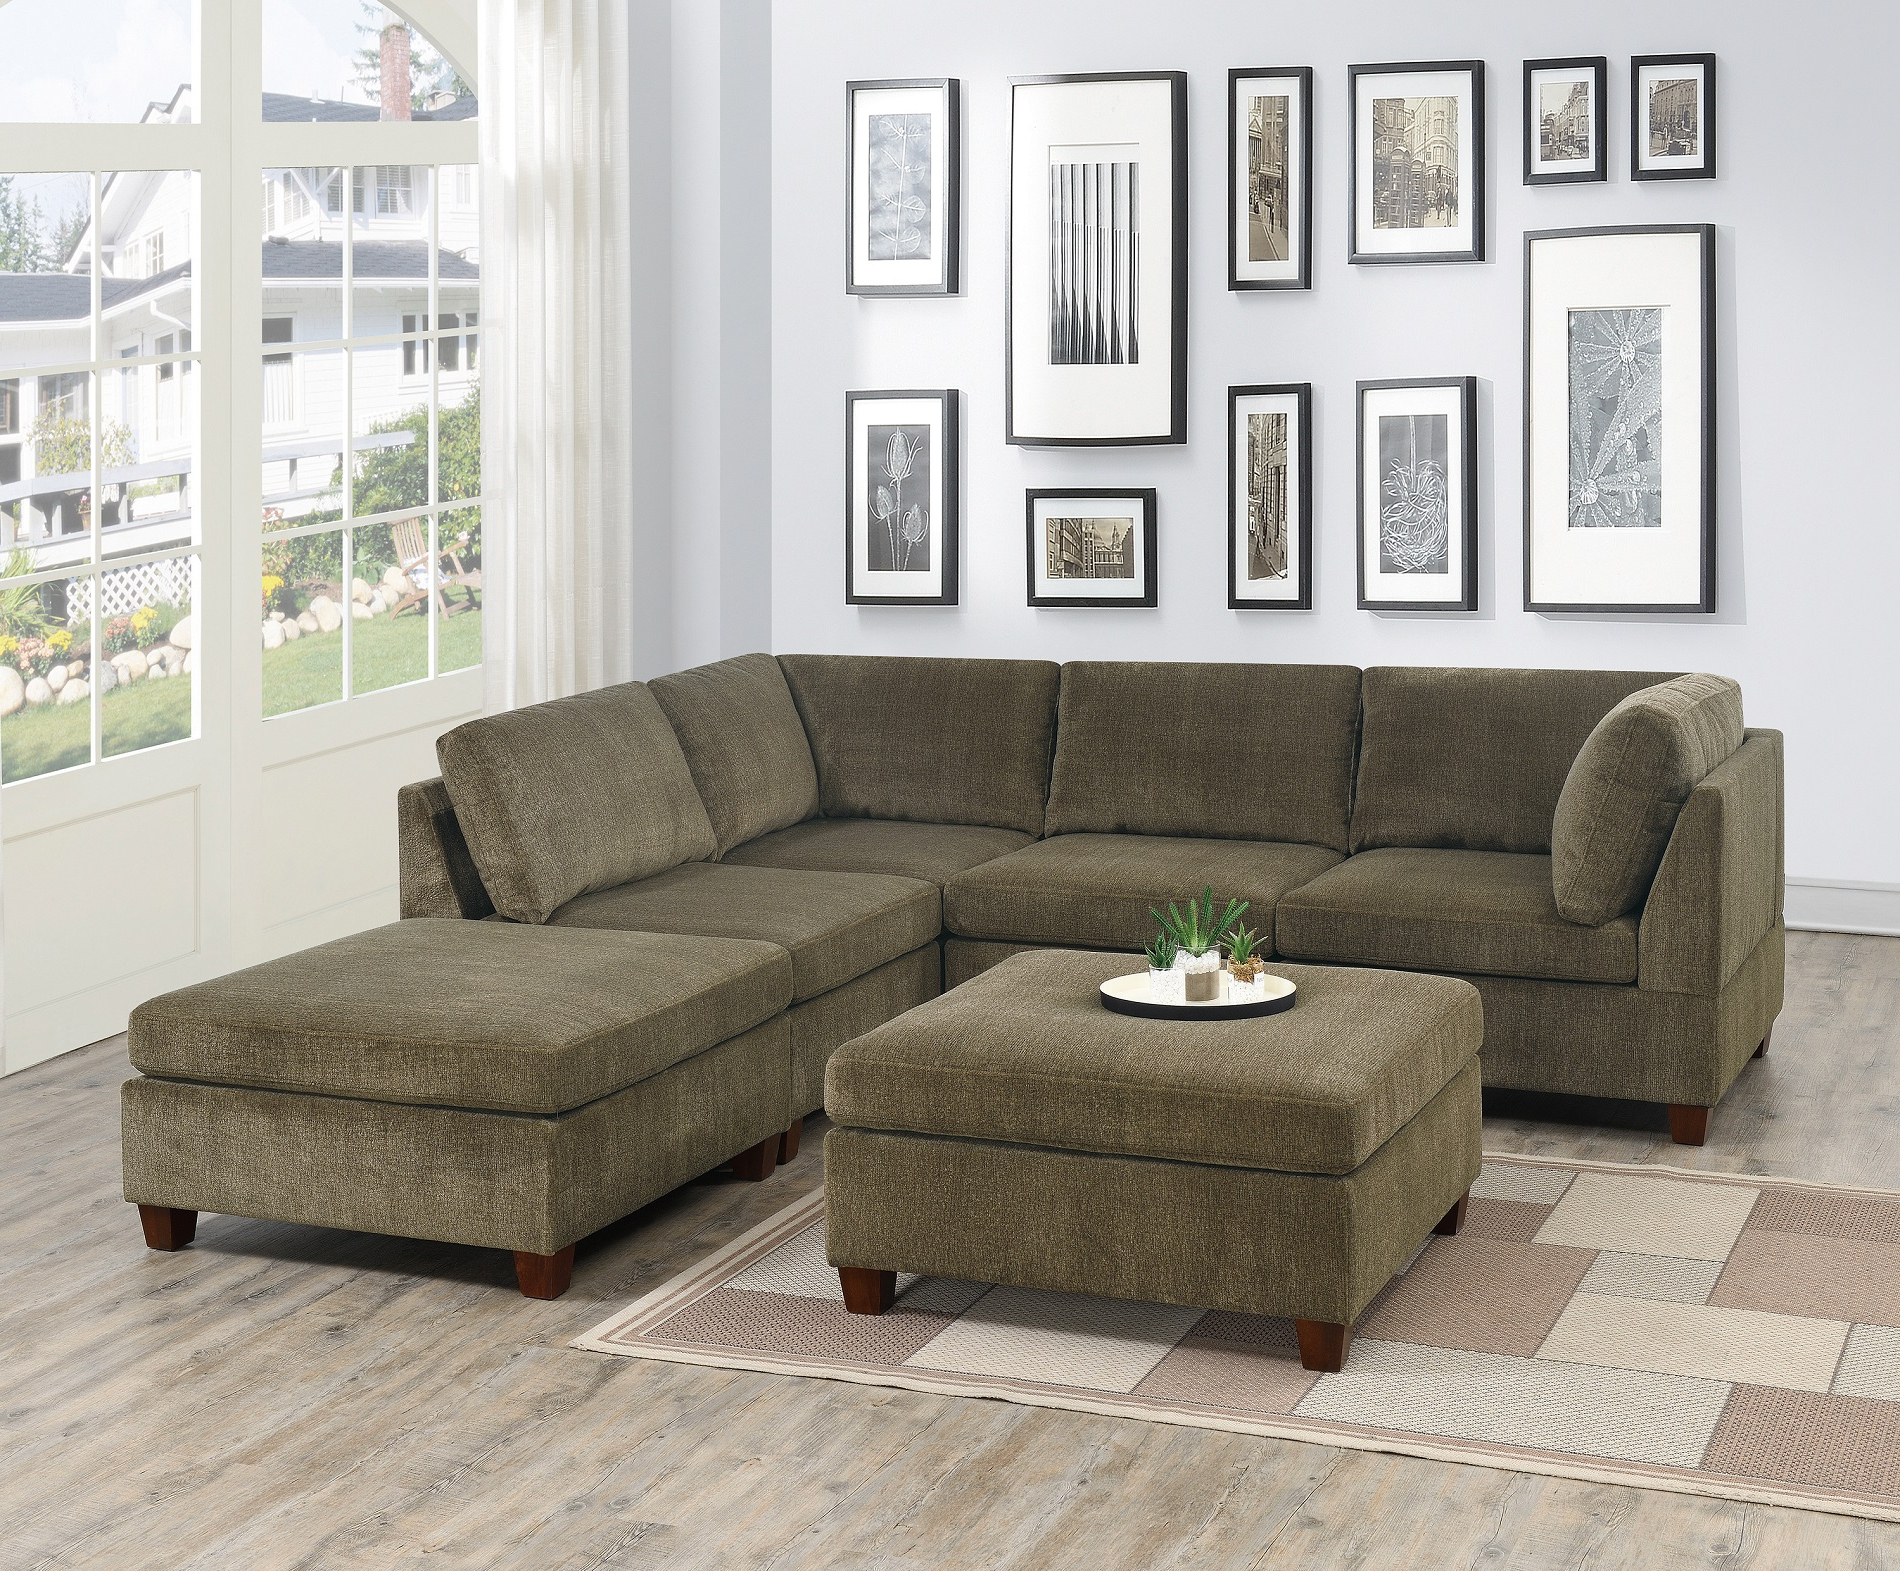 Contemporary Modern Unique Modular 6pc Sectional Sofa Set With Regard To Widely Used Mireille Modern And Contemporary Fabric Upholstered Sectional Sofas (View 1 of 20)